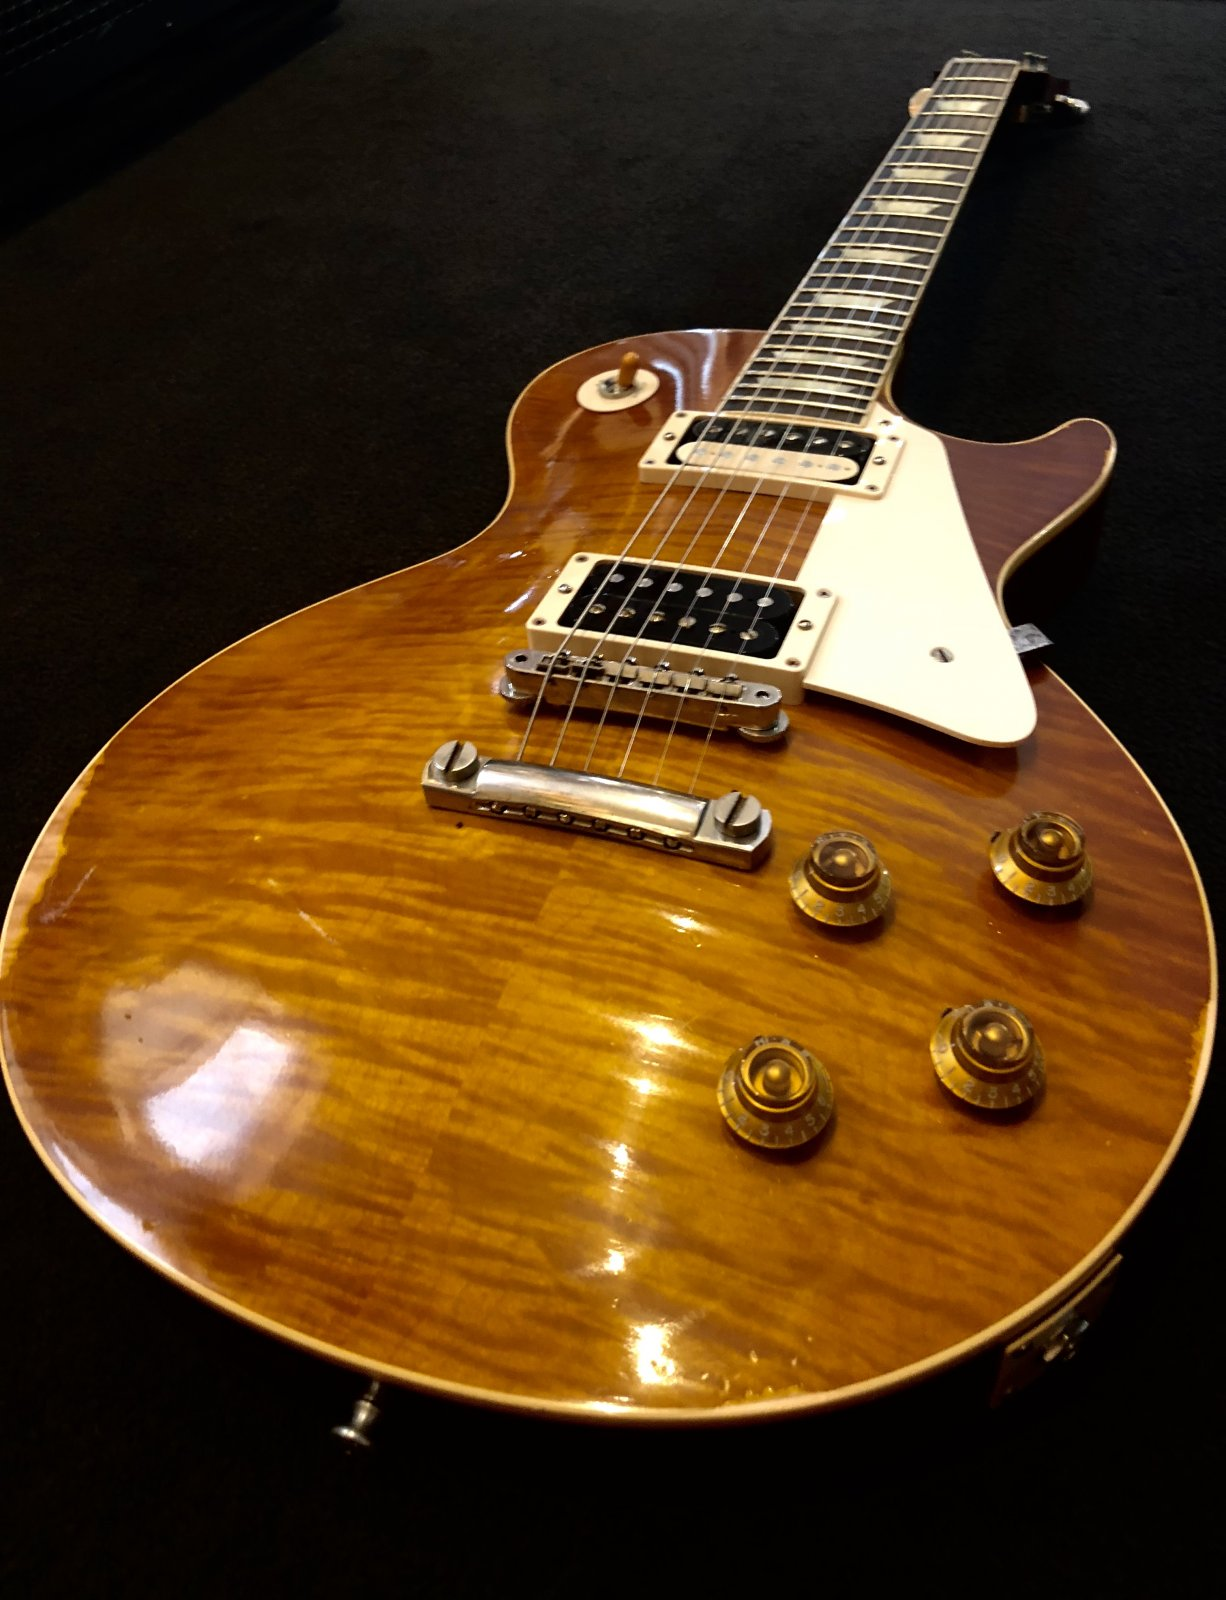 2014 Gibson Custom Shop Aged Vic's Old School '59 Les Paul R9 1959 1 of 25